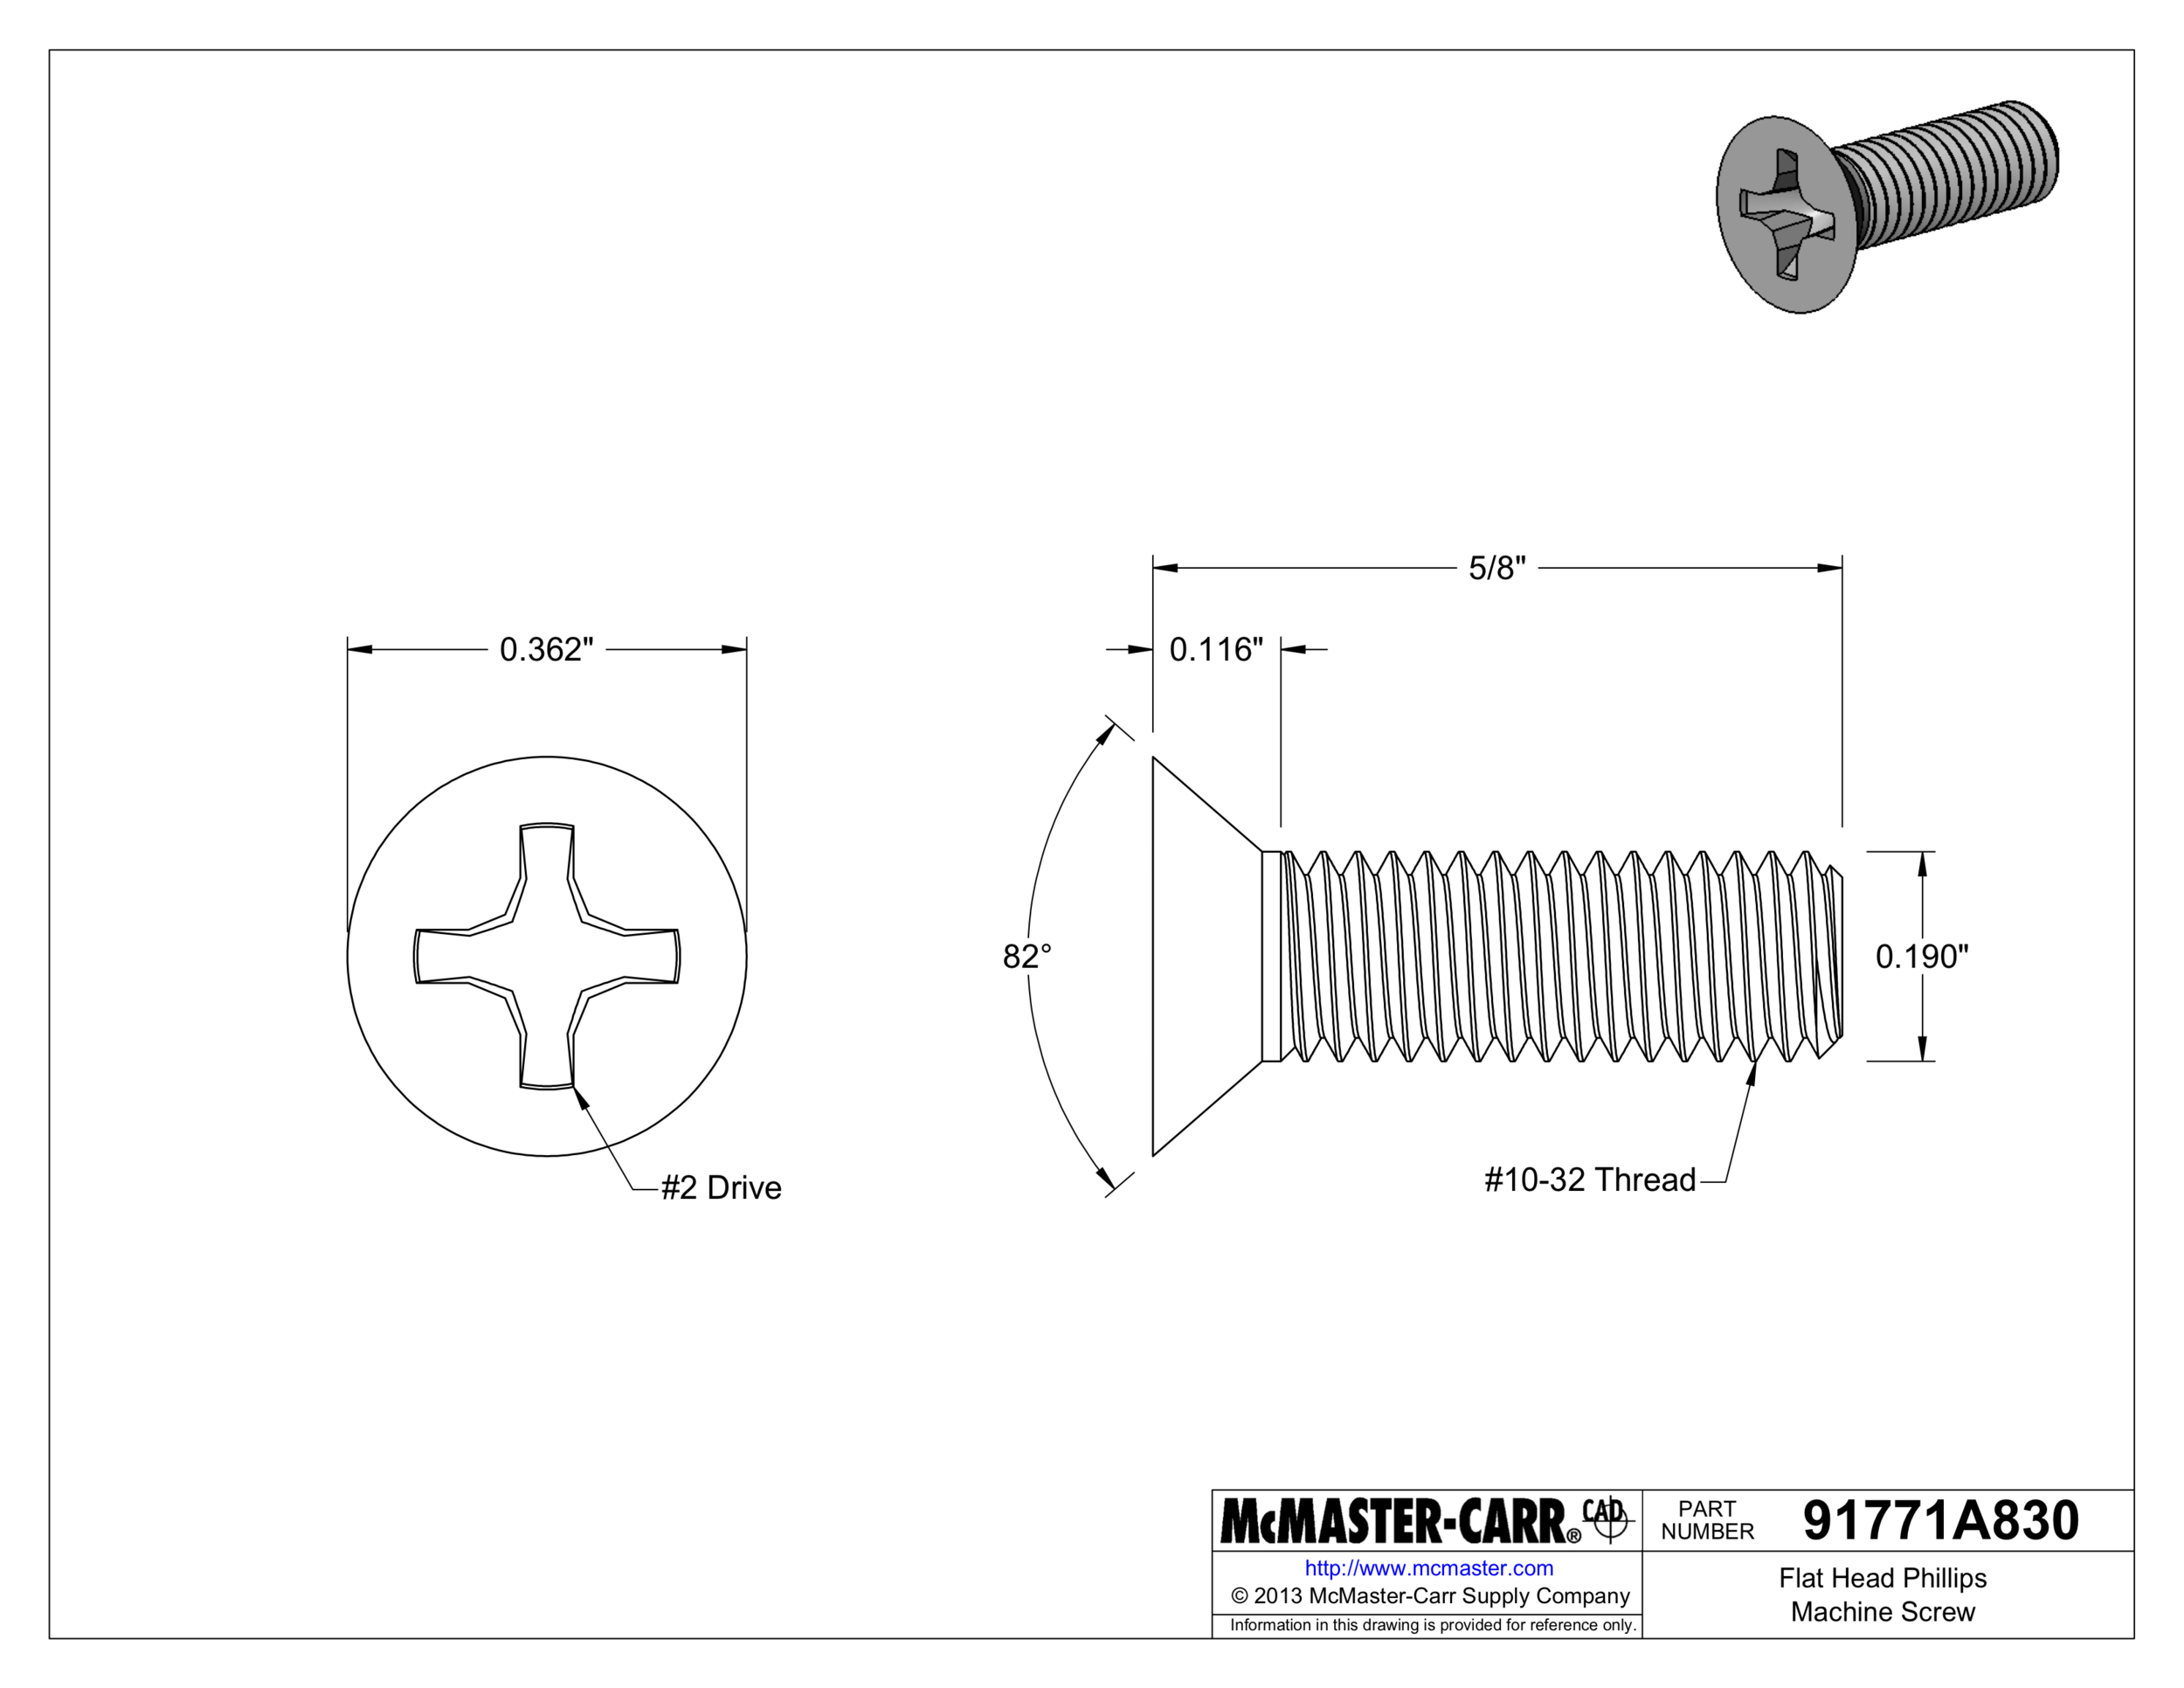 91771A830_18-8 SS FLAT HEAD PHILLIPS MACHINE SCREW.png